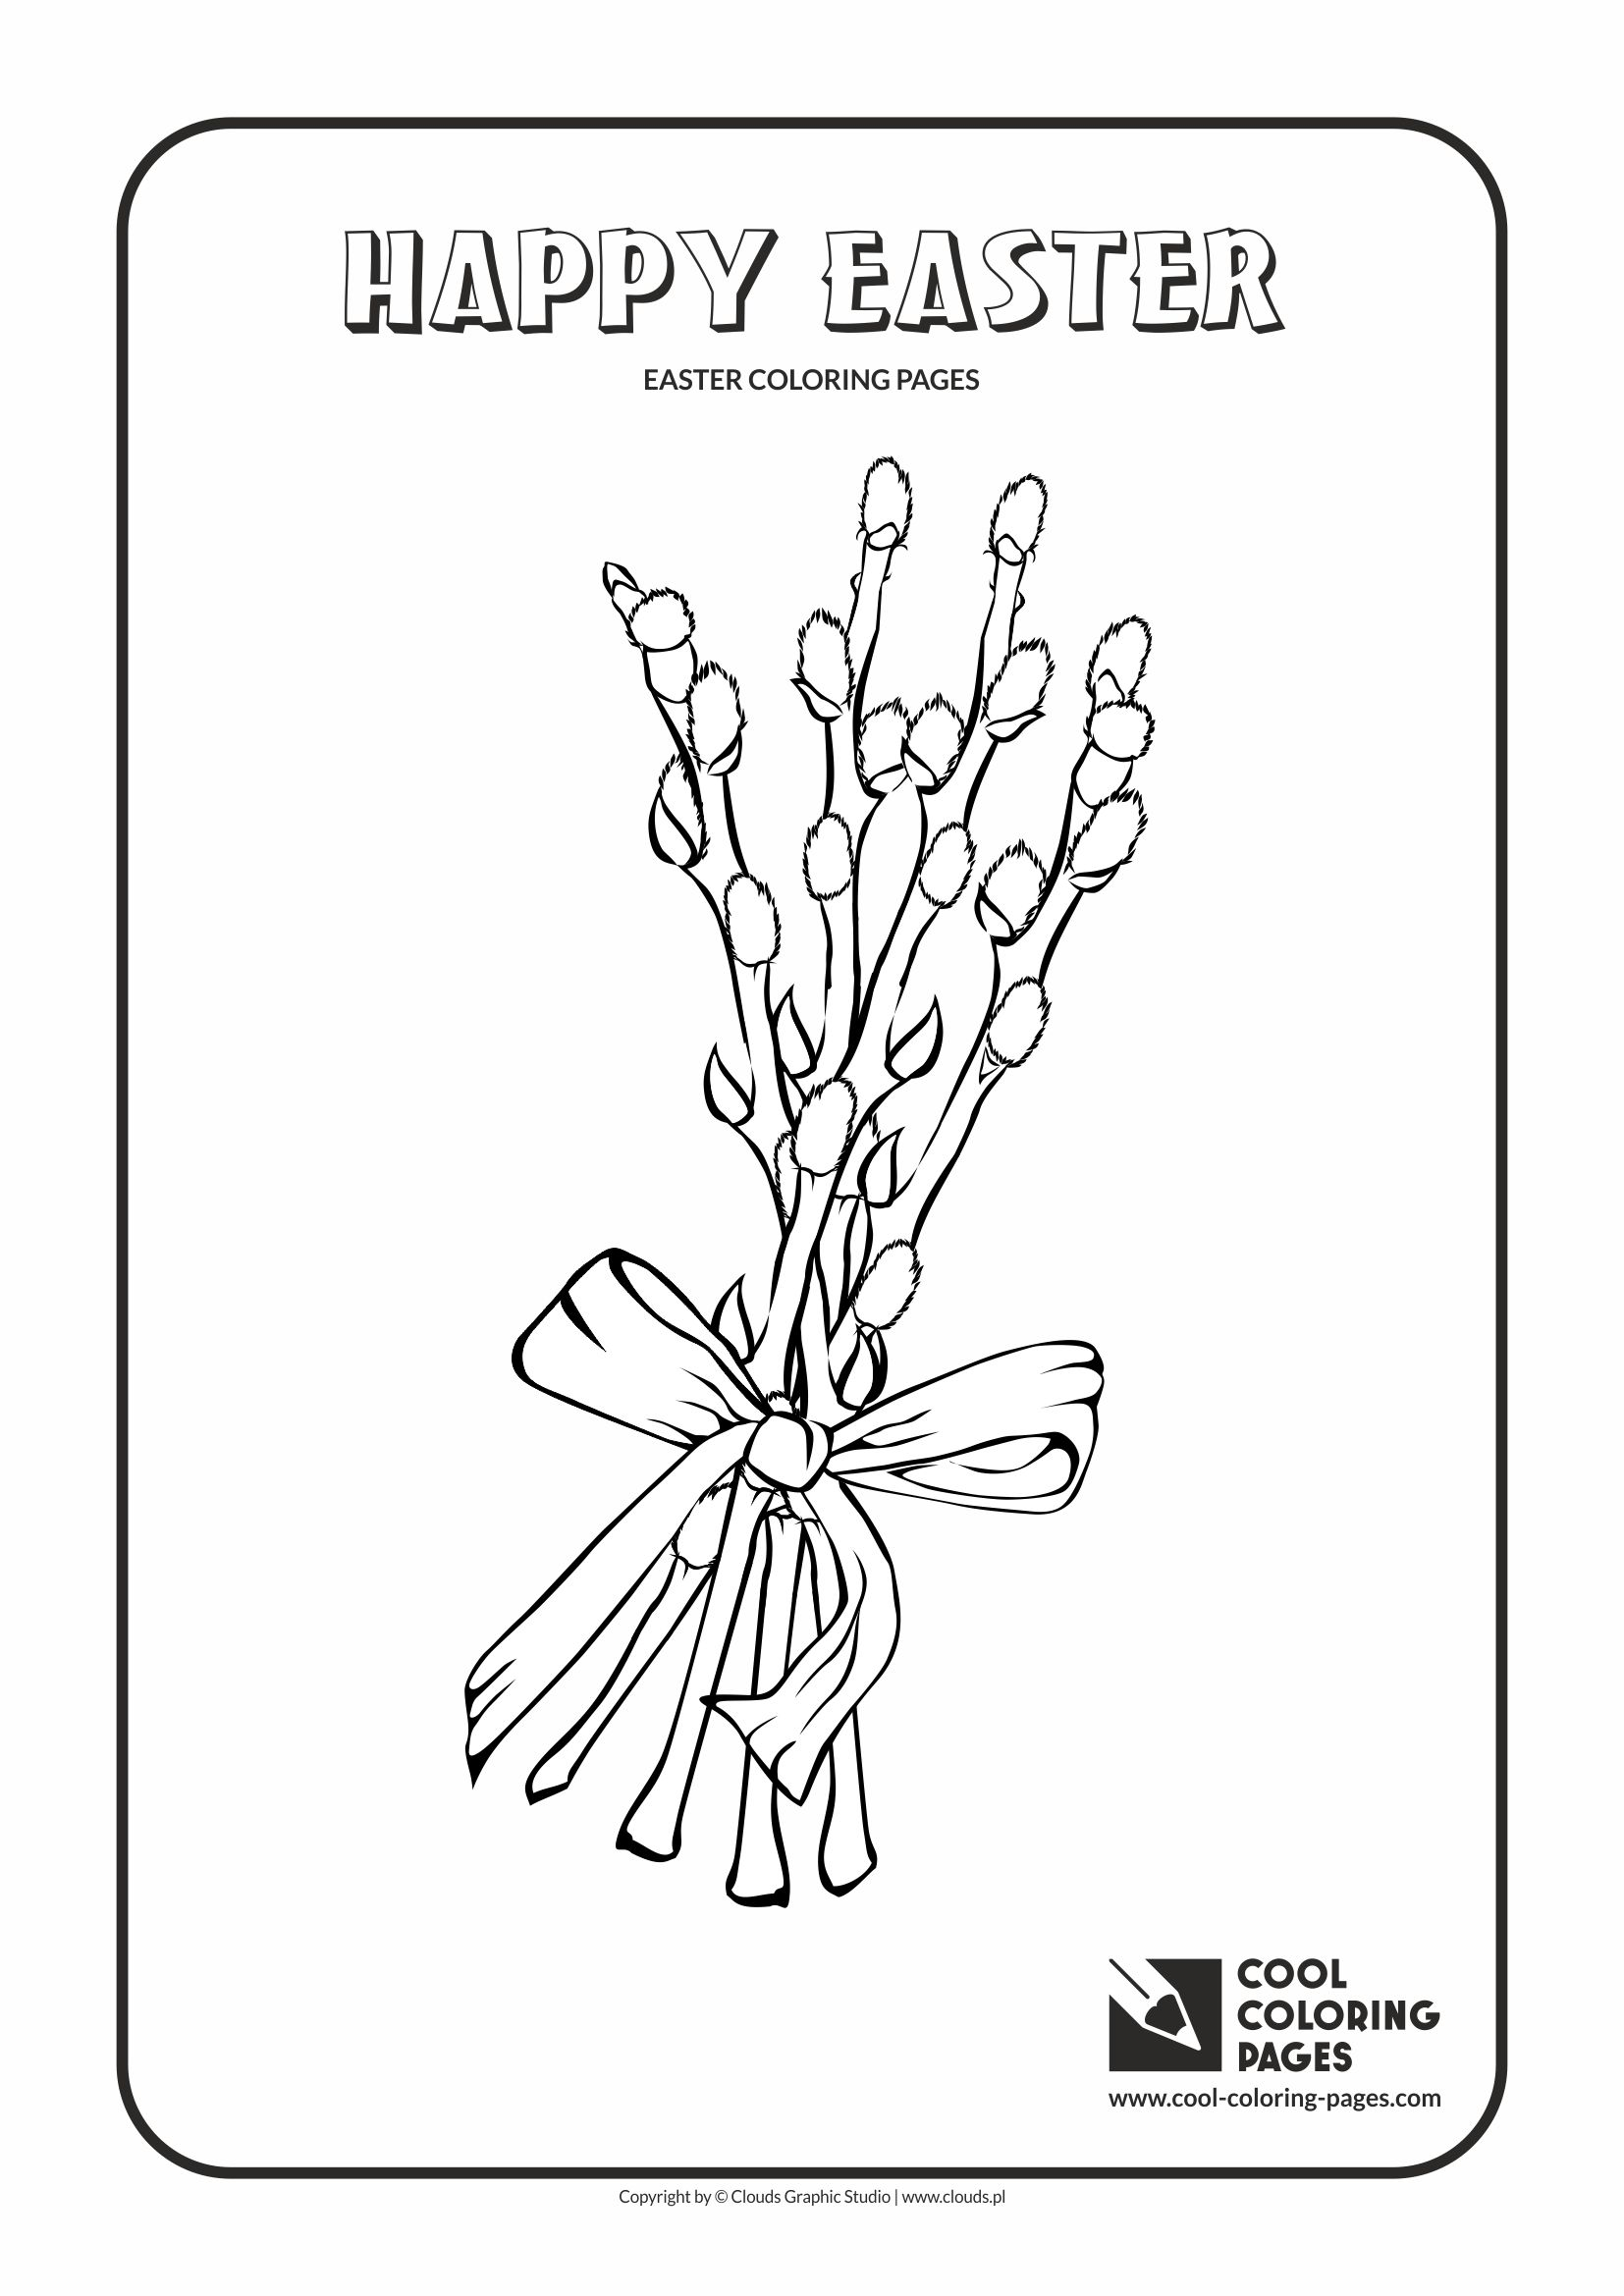 Cool Coloring Pages - Holidays / Easter palm / Coloring page with Easter palm